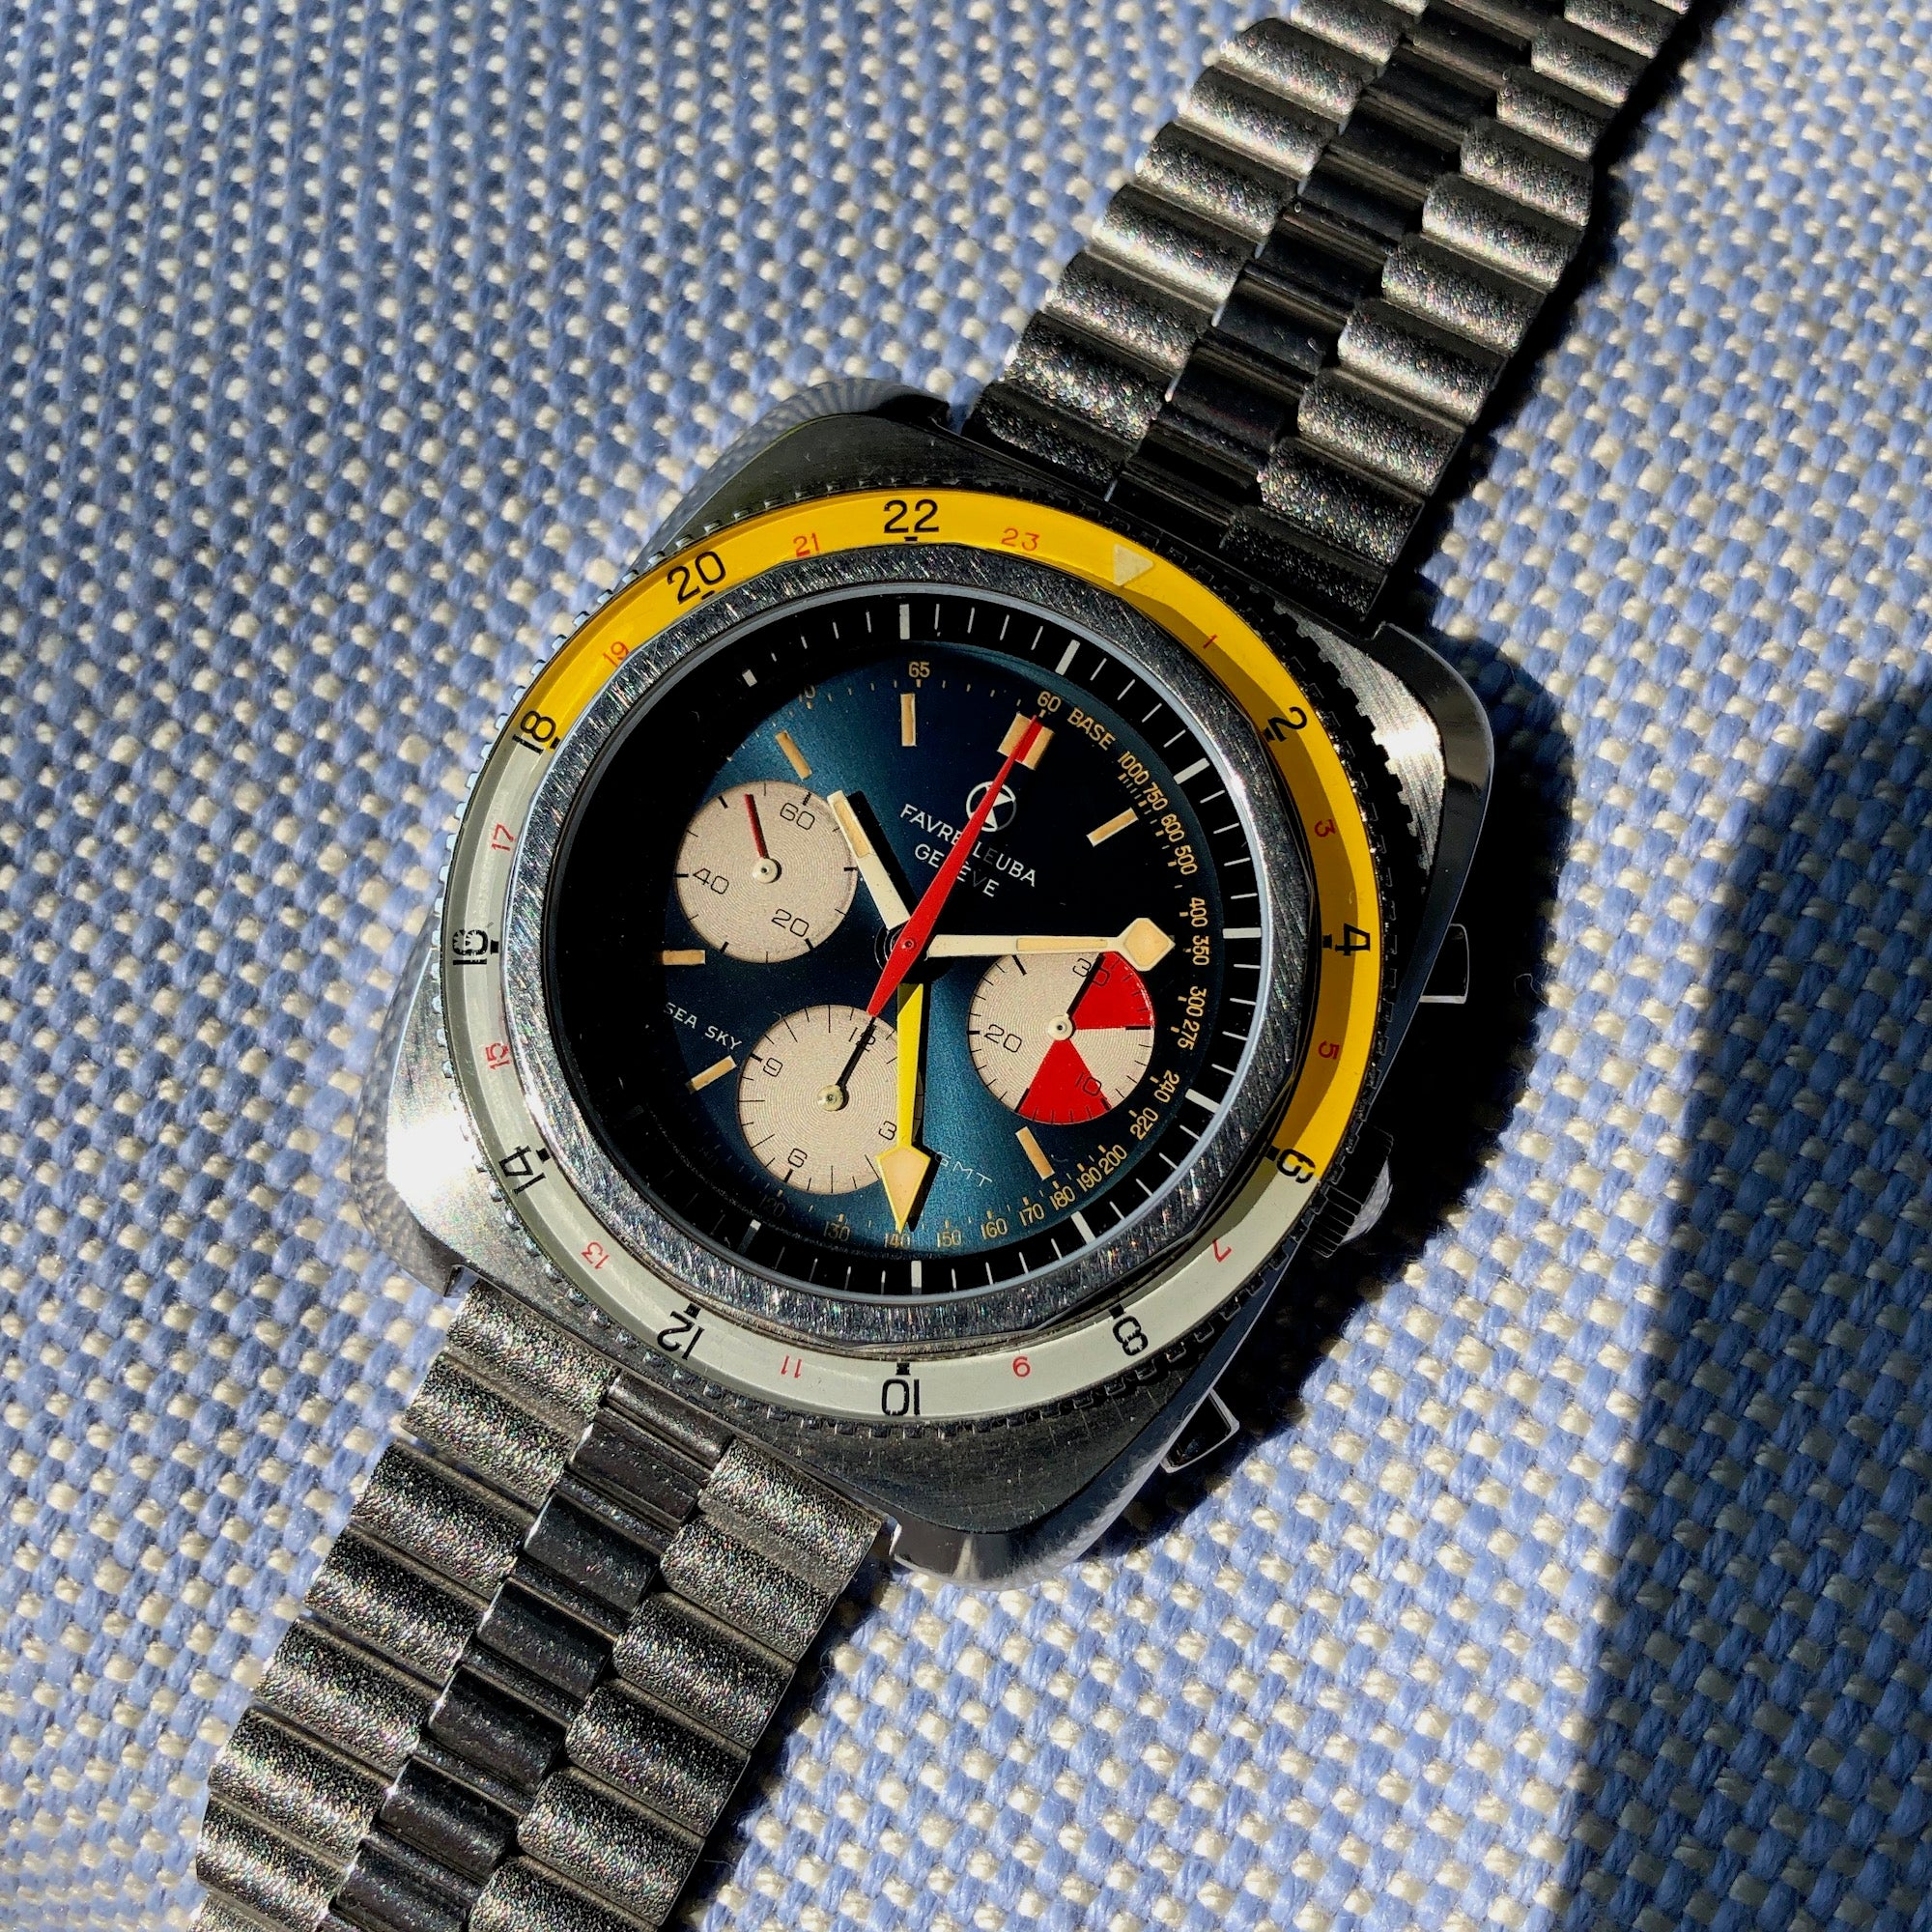 Vintage Favre Leuba Sea Sky GMT 33053 Valjoux 724 Chronograph Wristwatch - Hashtag Watch Company